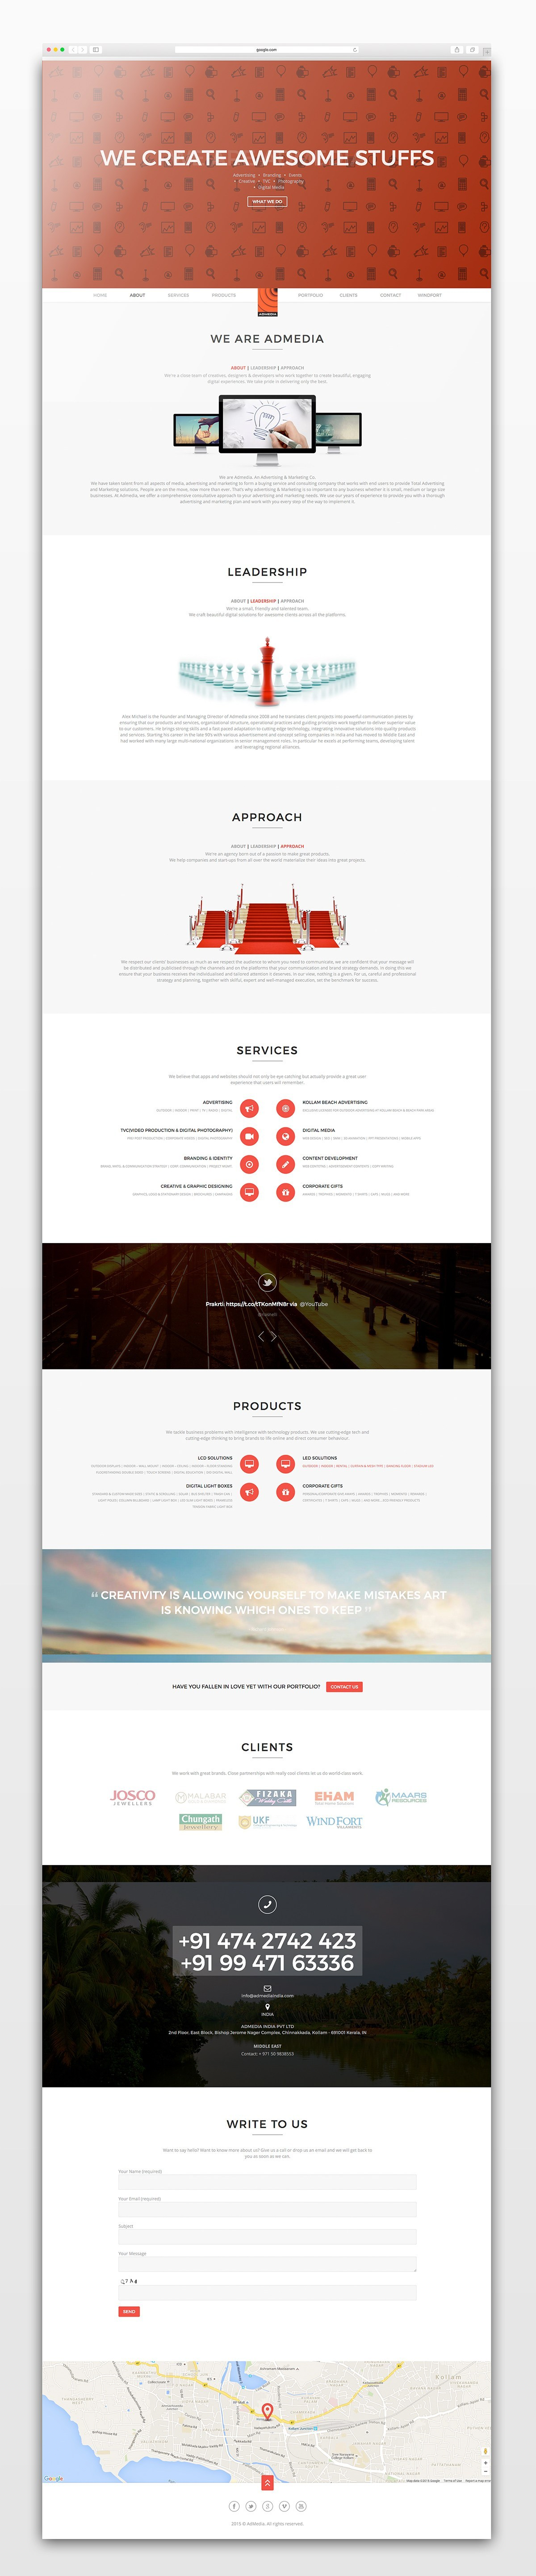 freelance_website_design